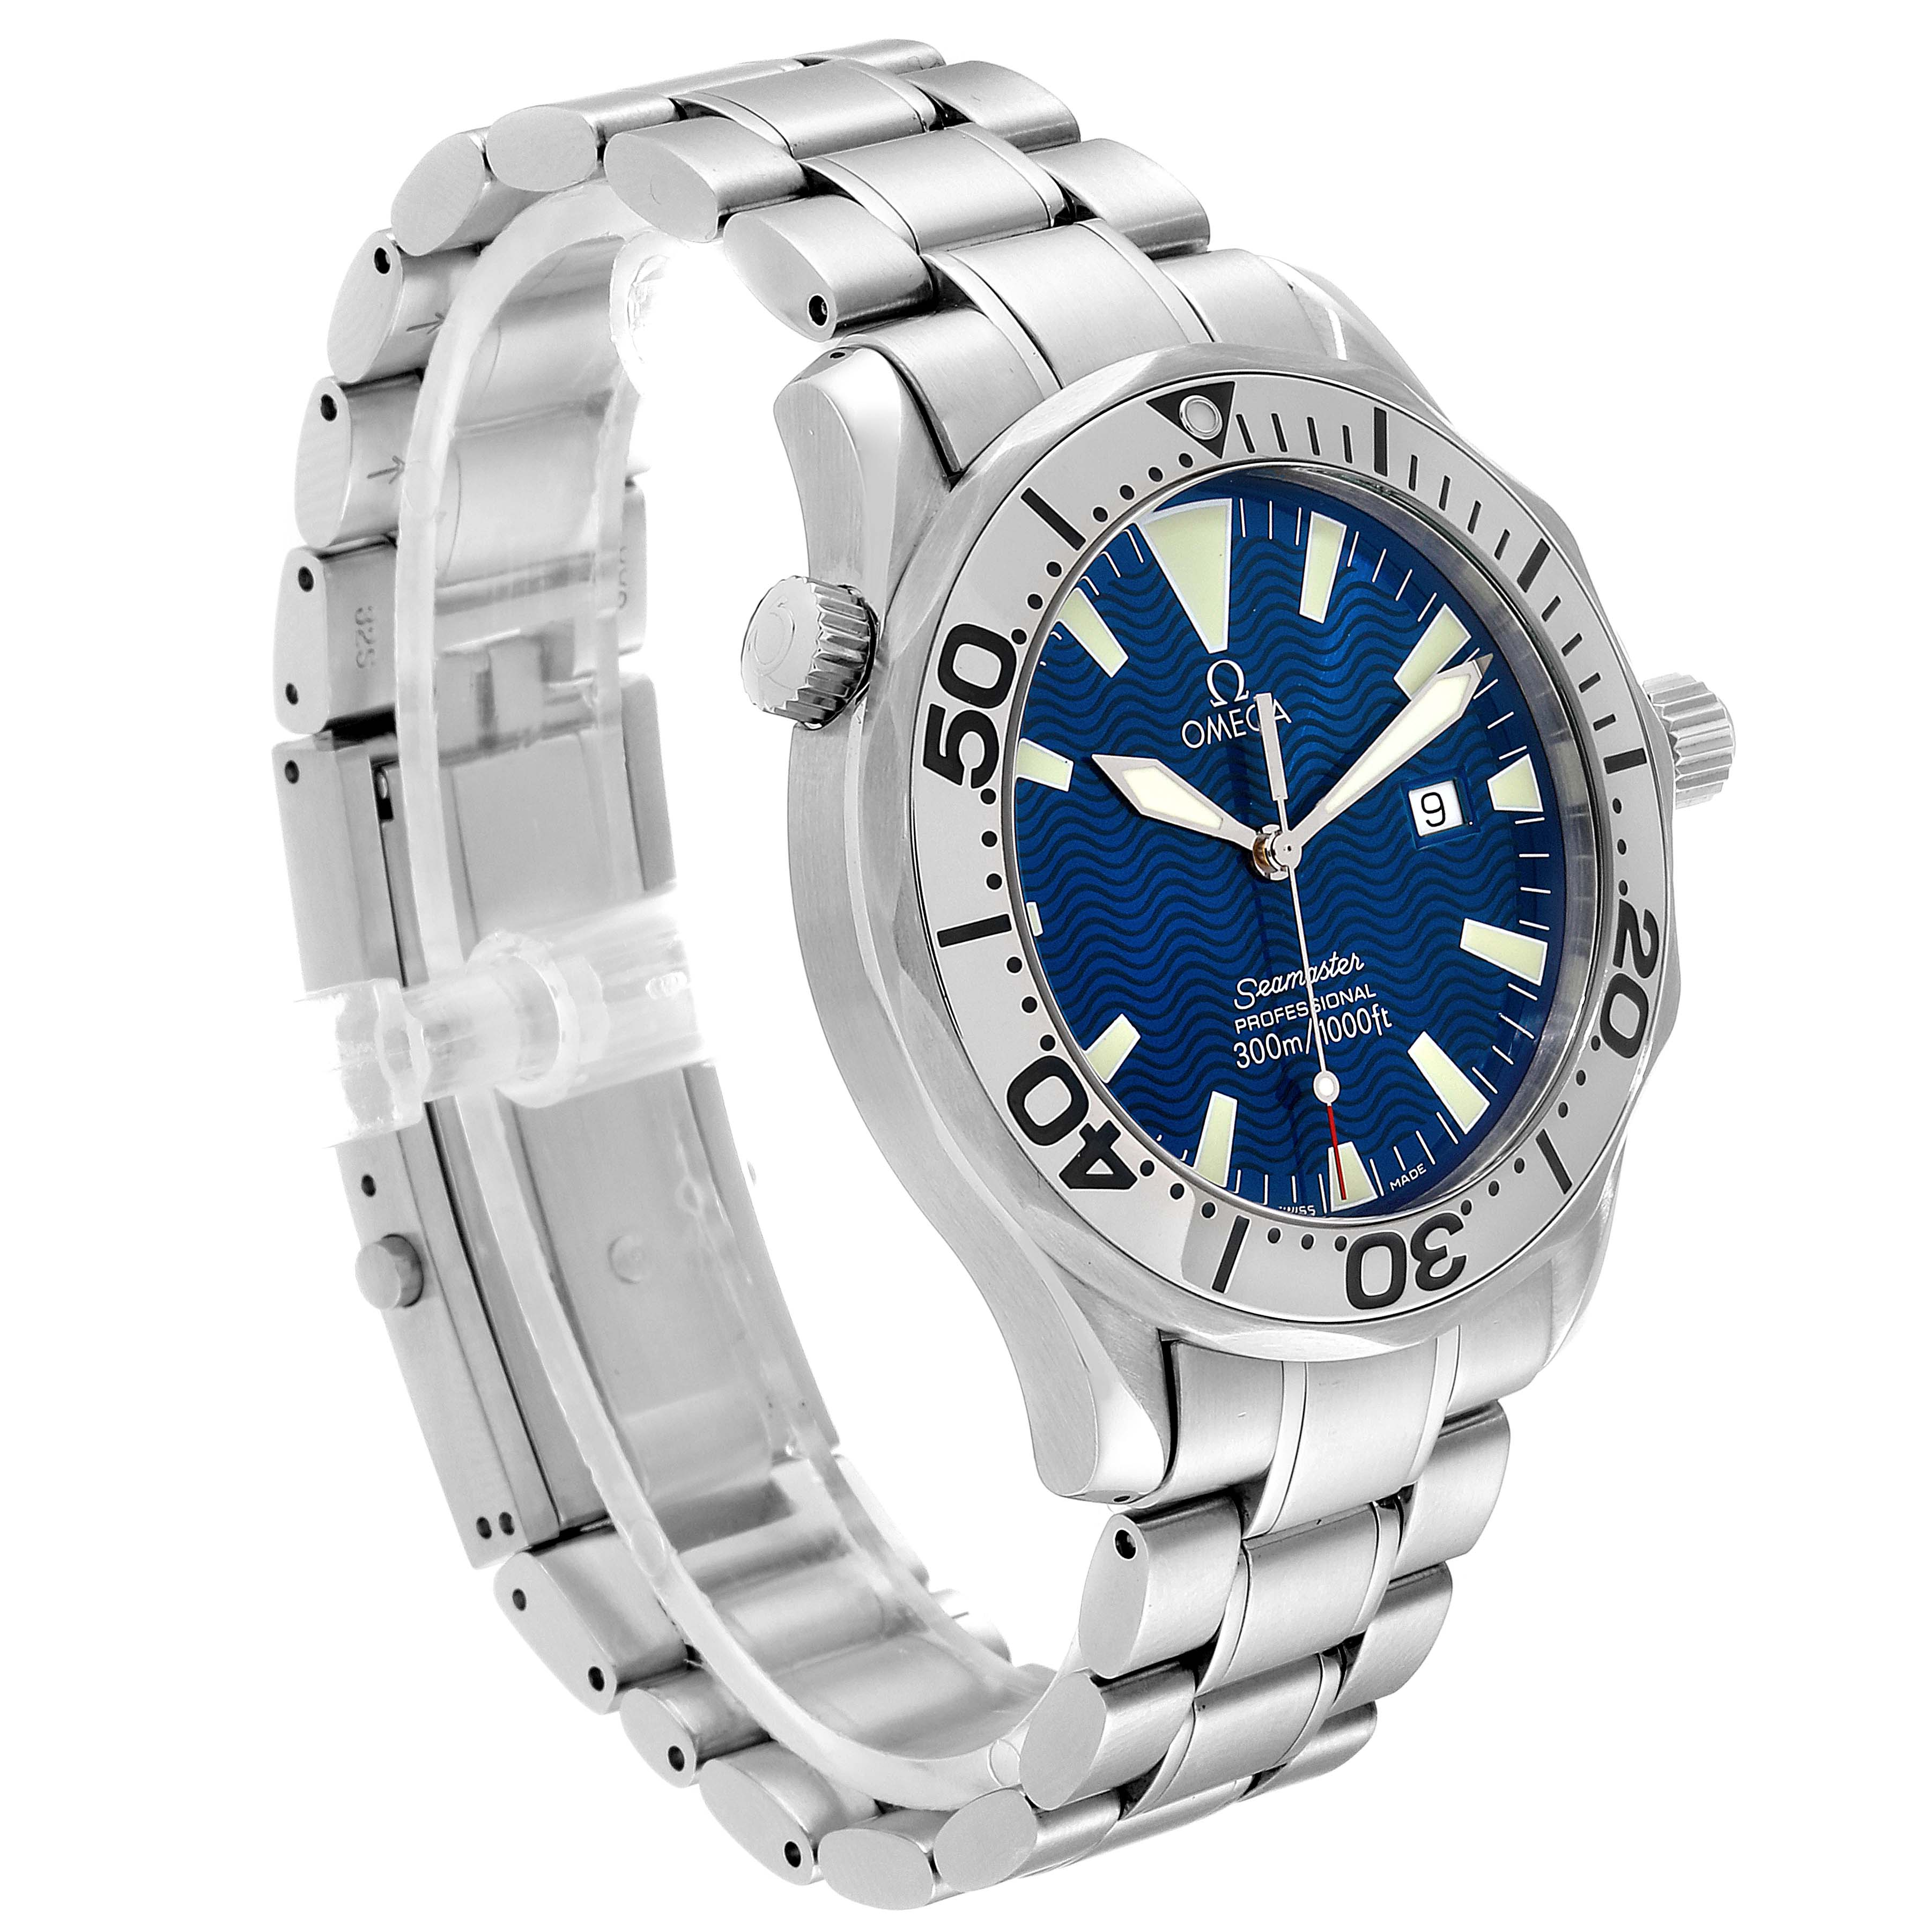 Omega Seamaster 300M Blue Dial Steel Mens Watch 2255.80.00 SwissWatchExpo